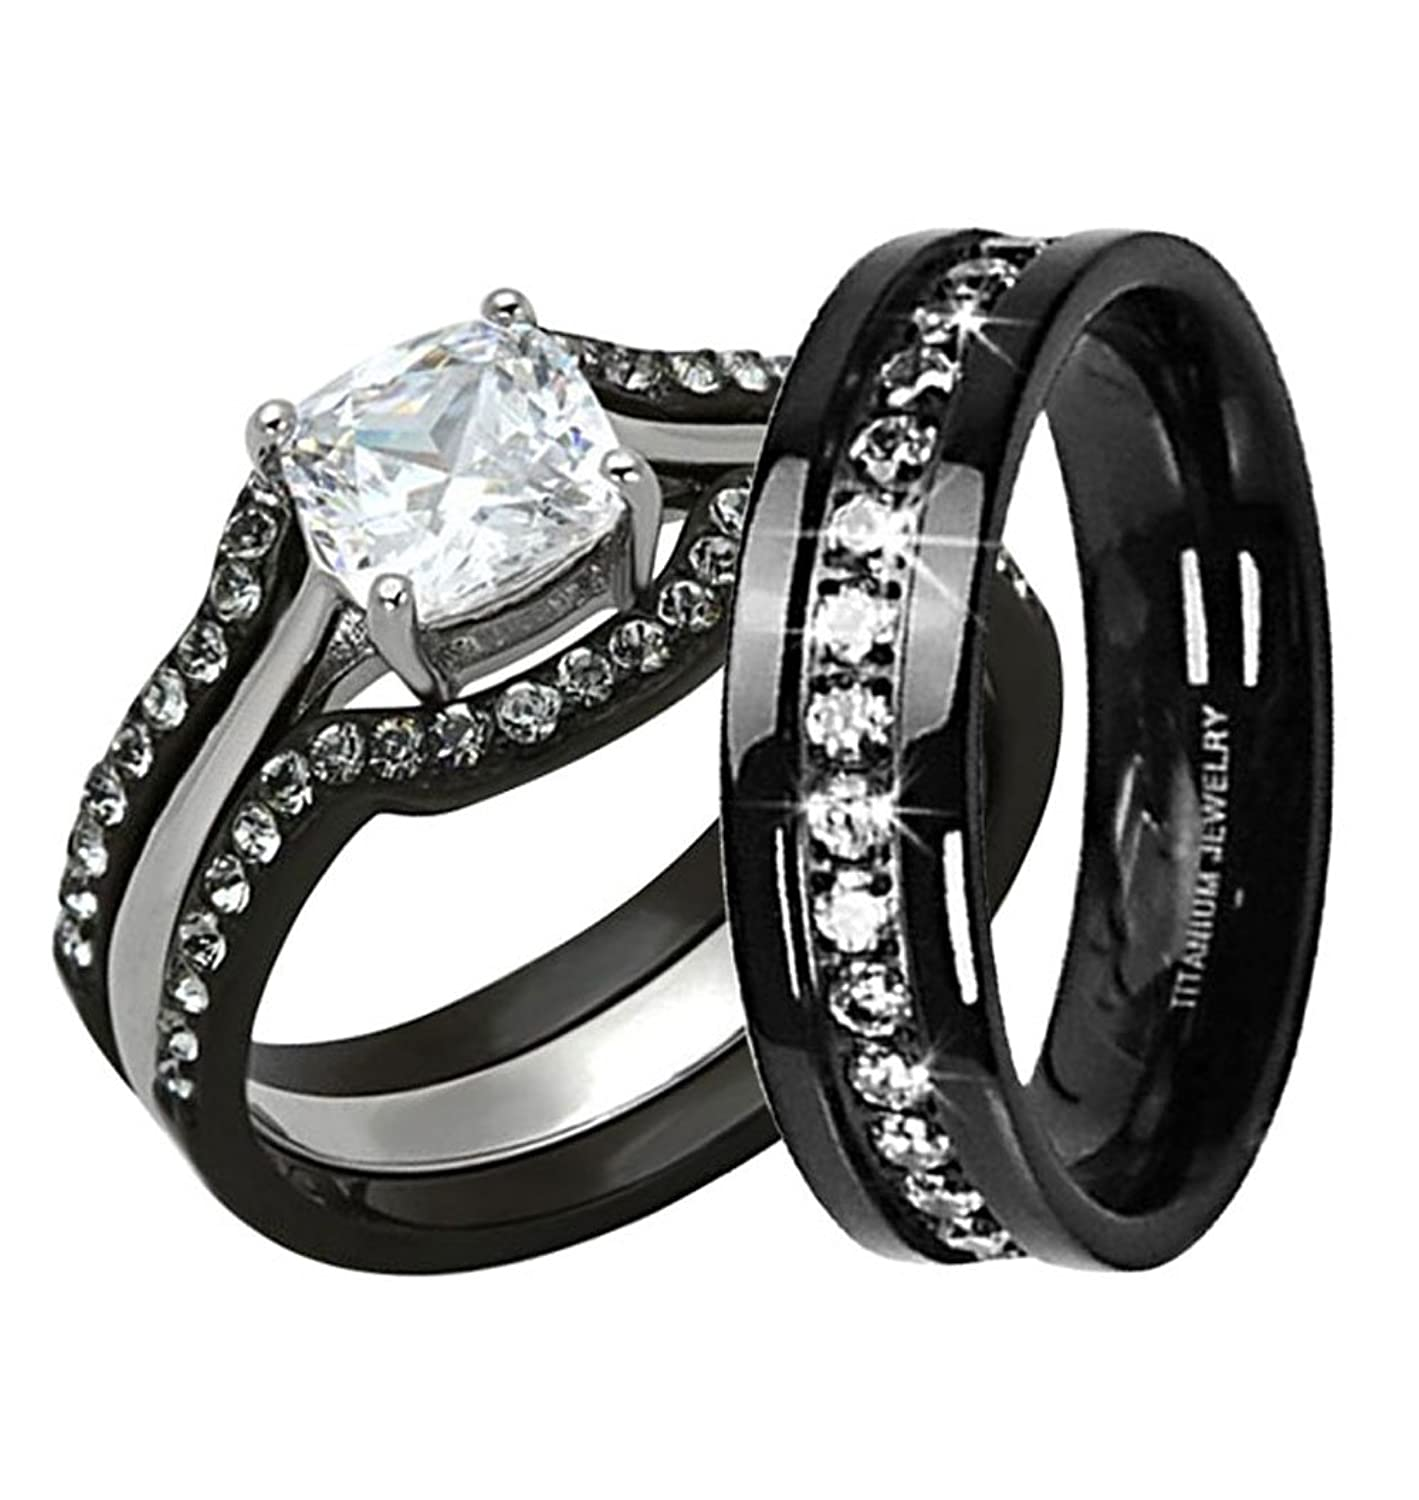 amazoncom black stainless steel titanium his and hers wedding ring set cushion cut cz women size 10 men size 10 jewelry - All Black Wedding Rings